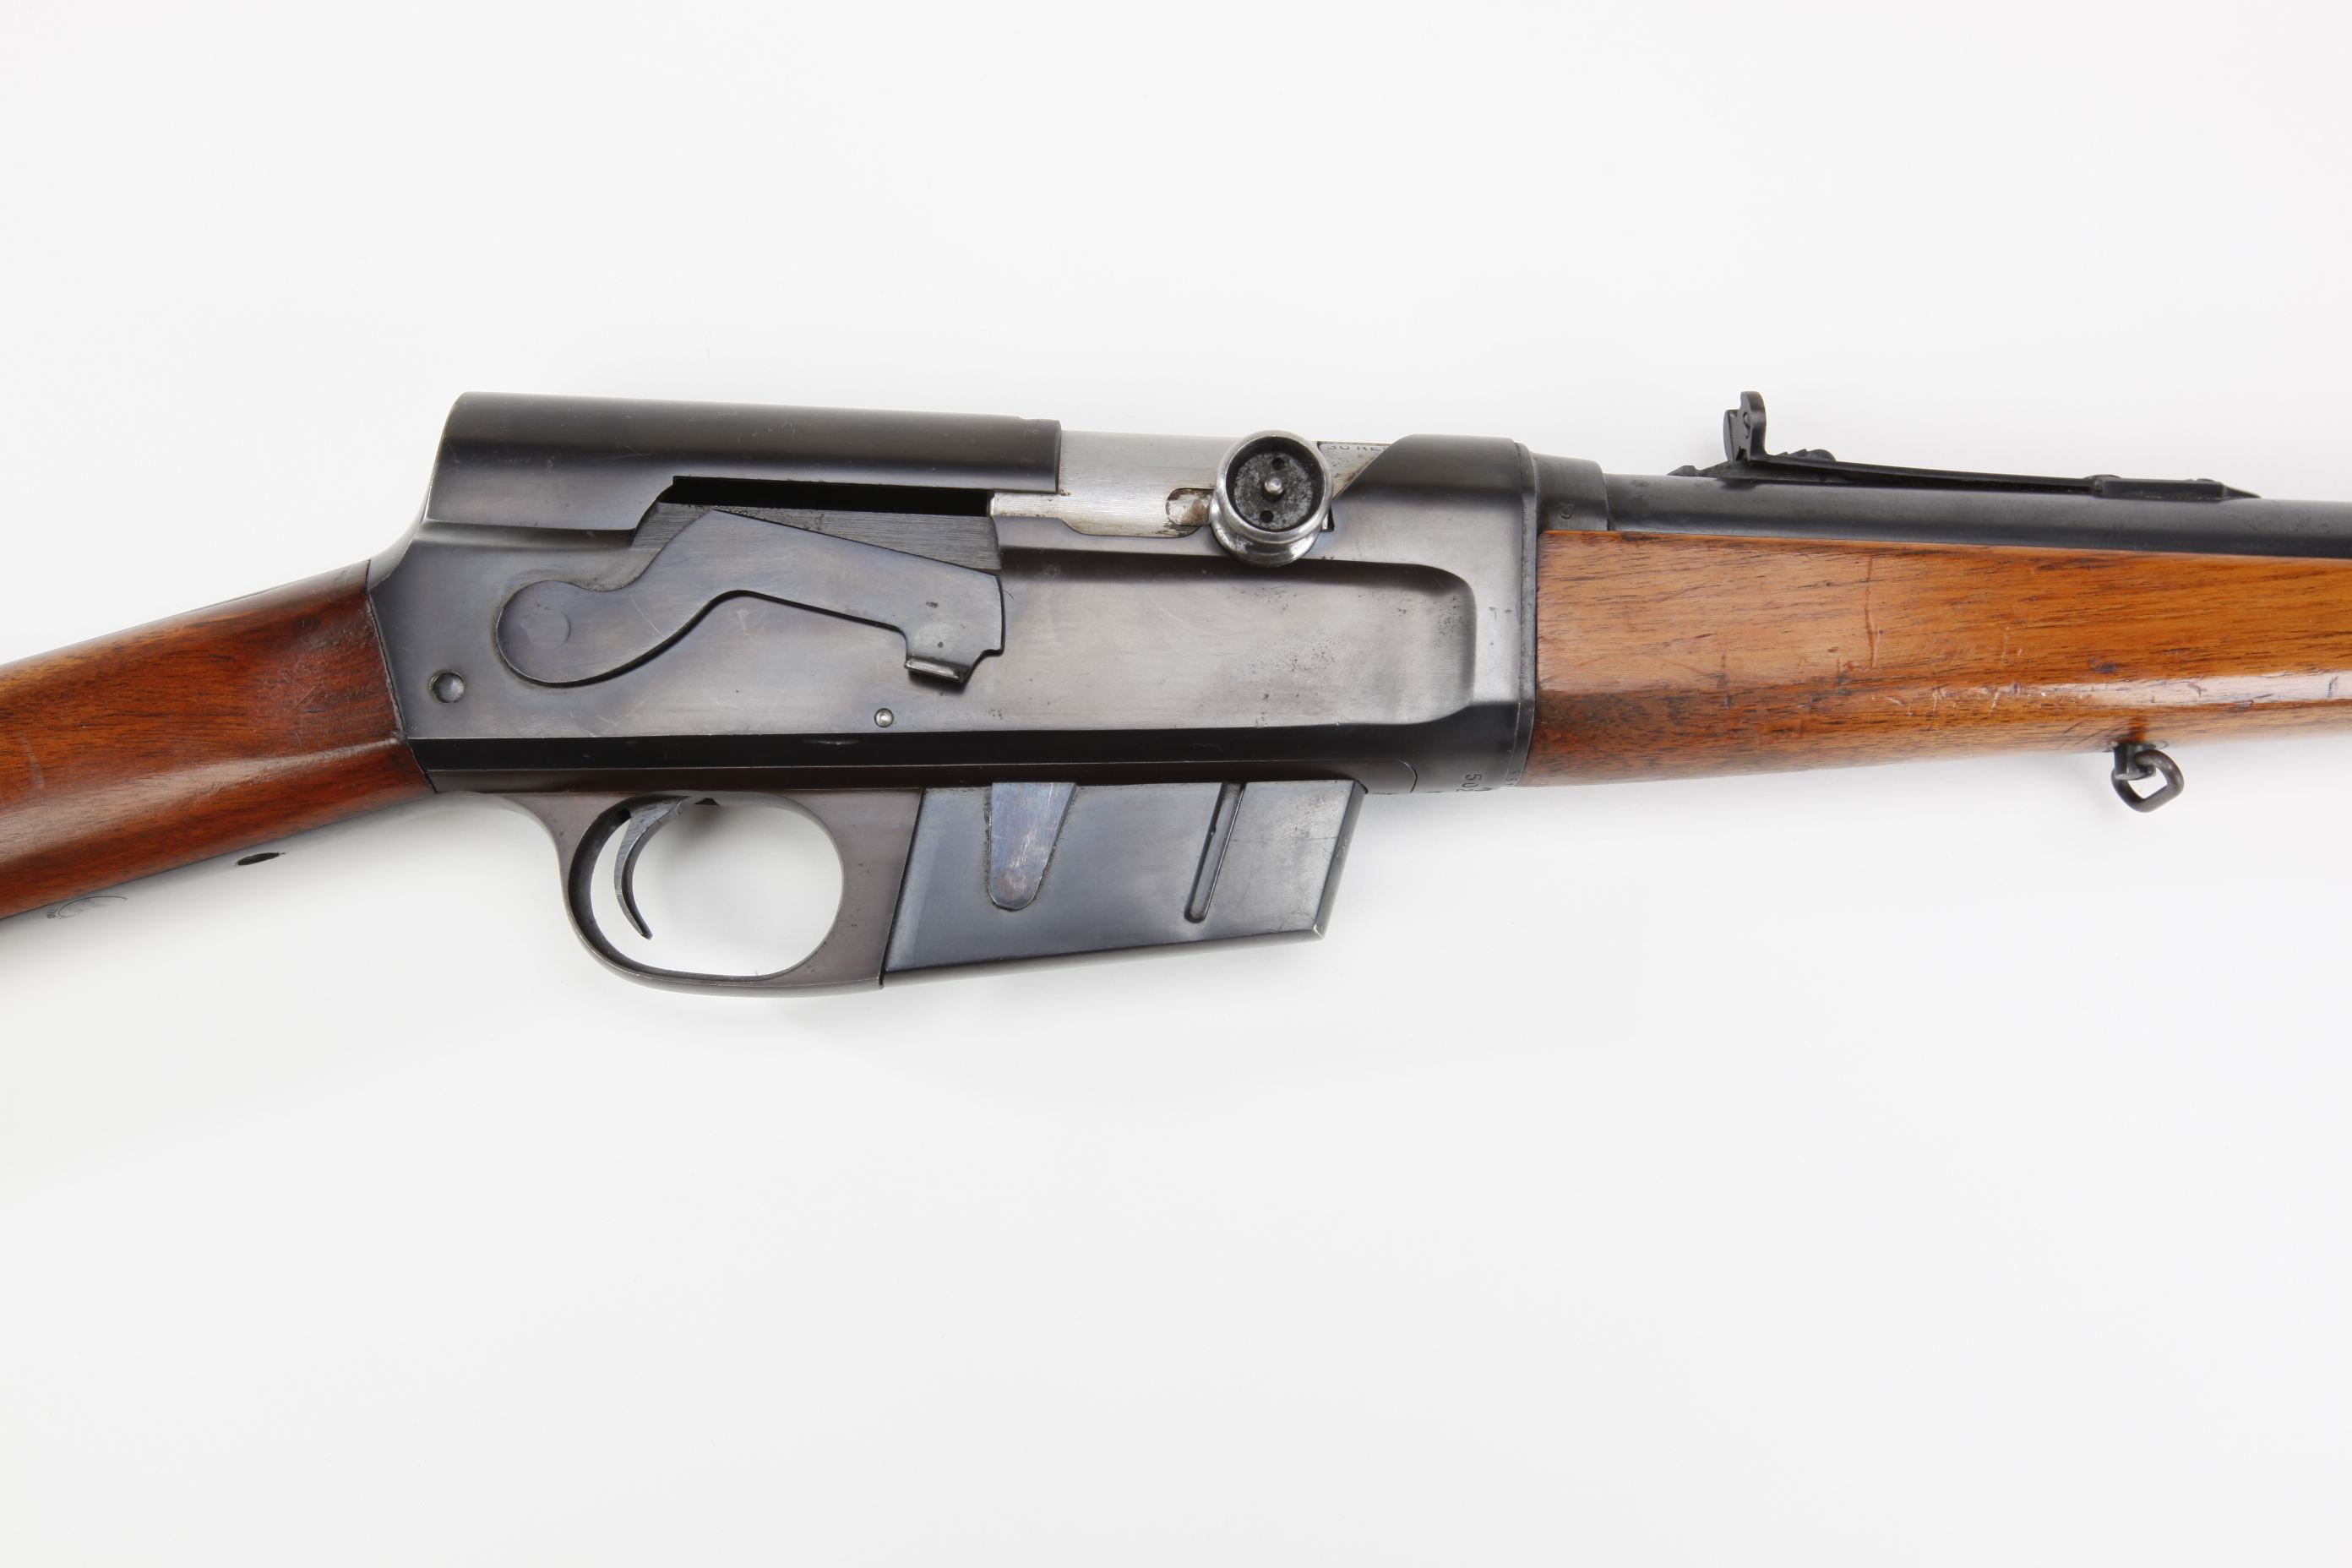 Remington Model 8 Autoloading Rifle